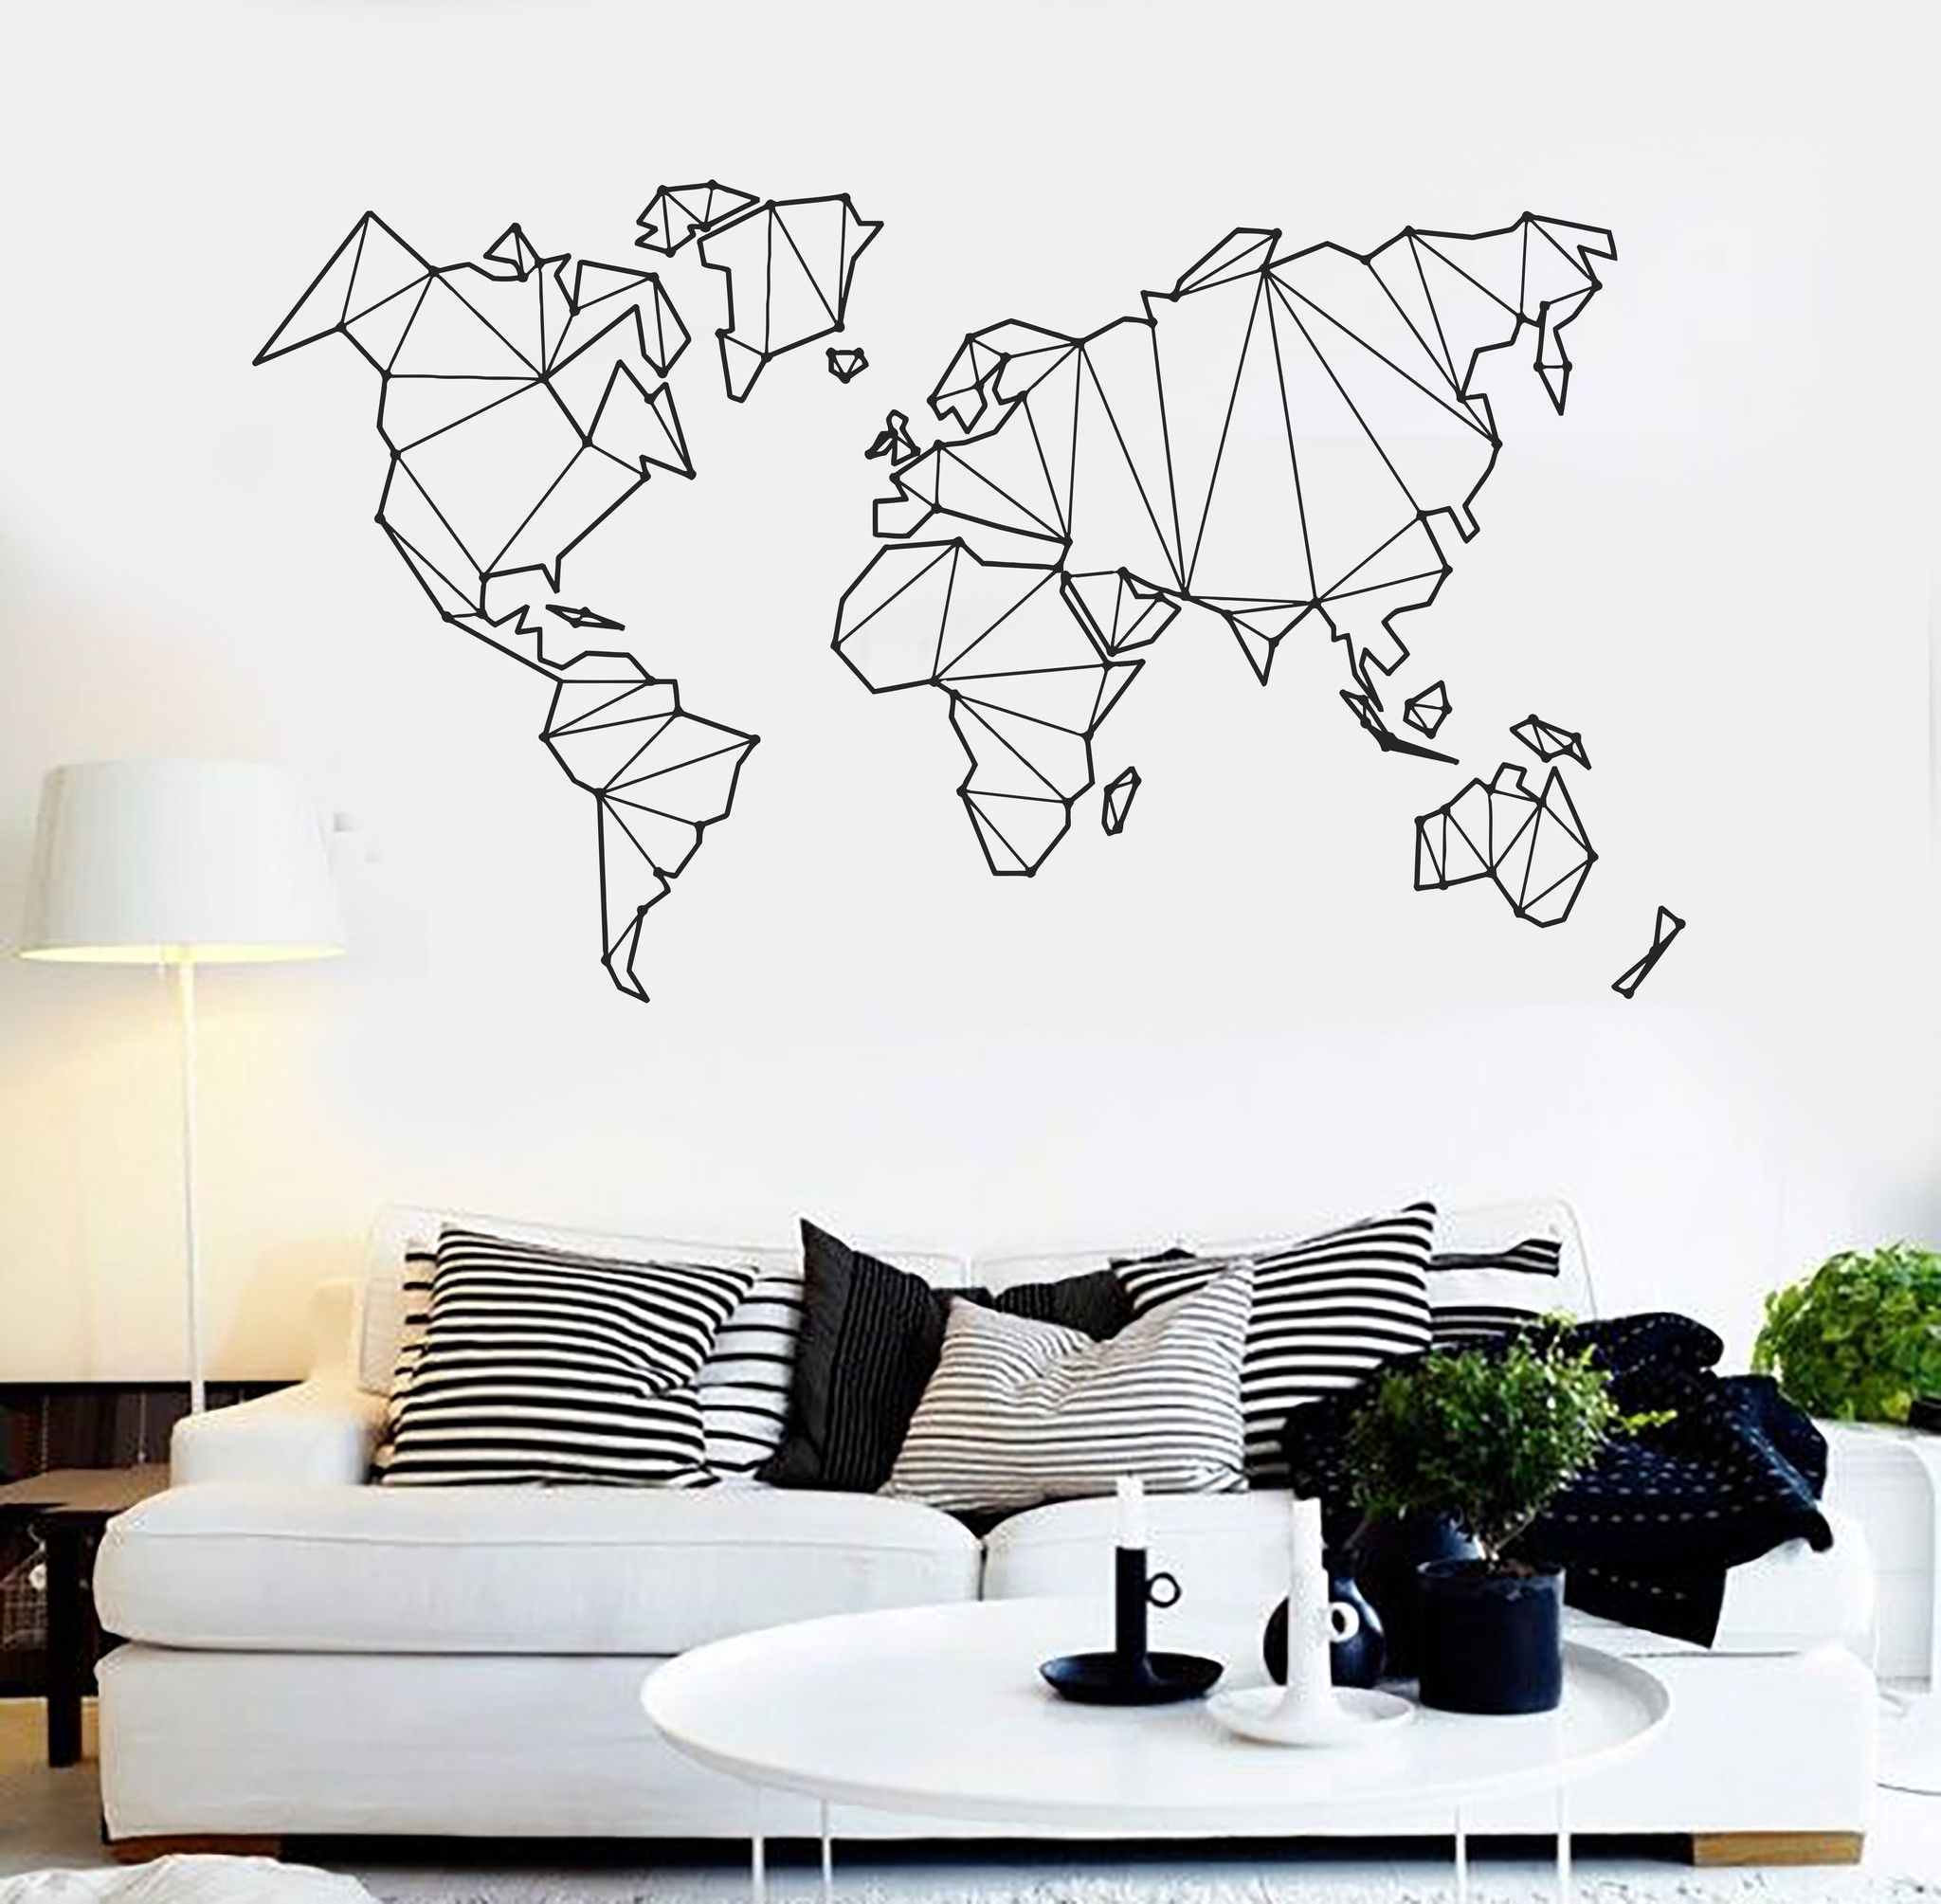 Vinyl Wall Decal Abstract Map World Geography Earth Stickers Throughout Most Popular Abstract Art Wall Decal (View 18 of 20)